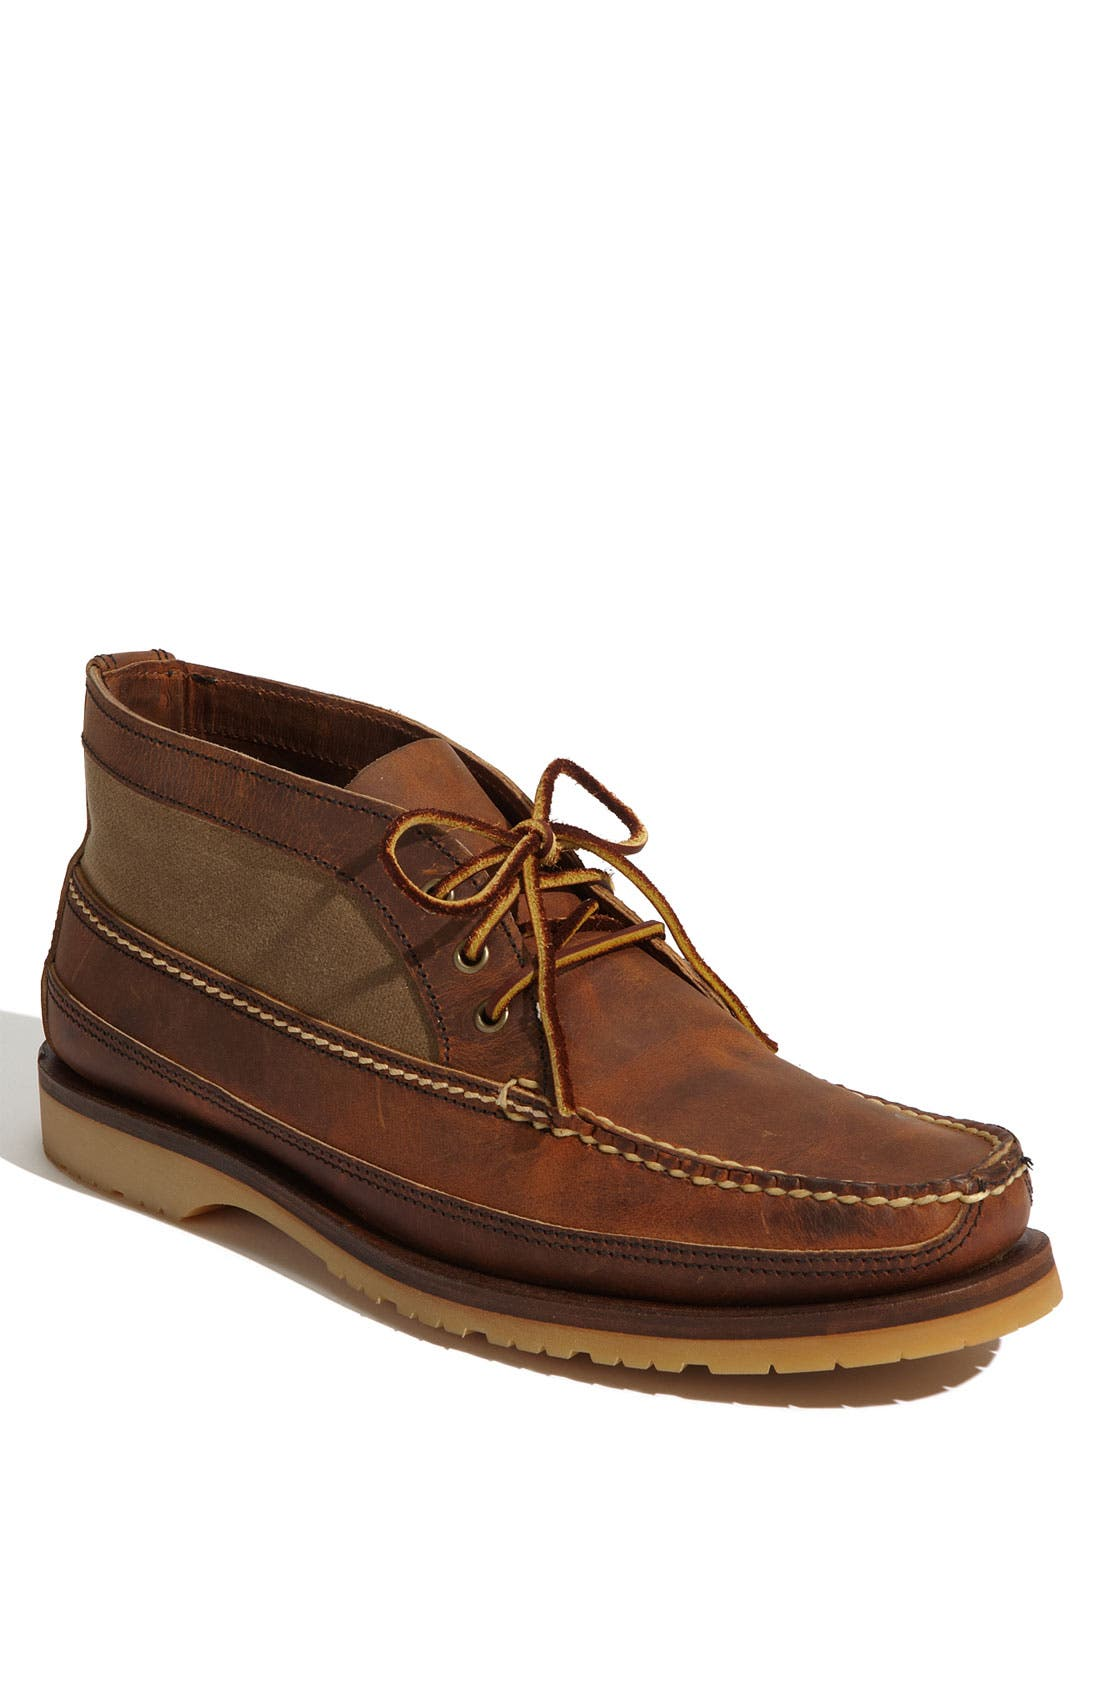 Main Image - Red Wing 'Wabasha' Chukka Boot